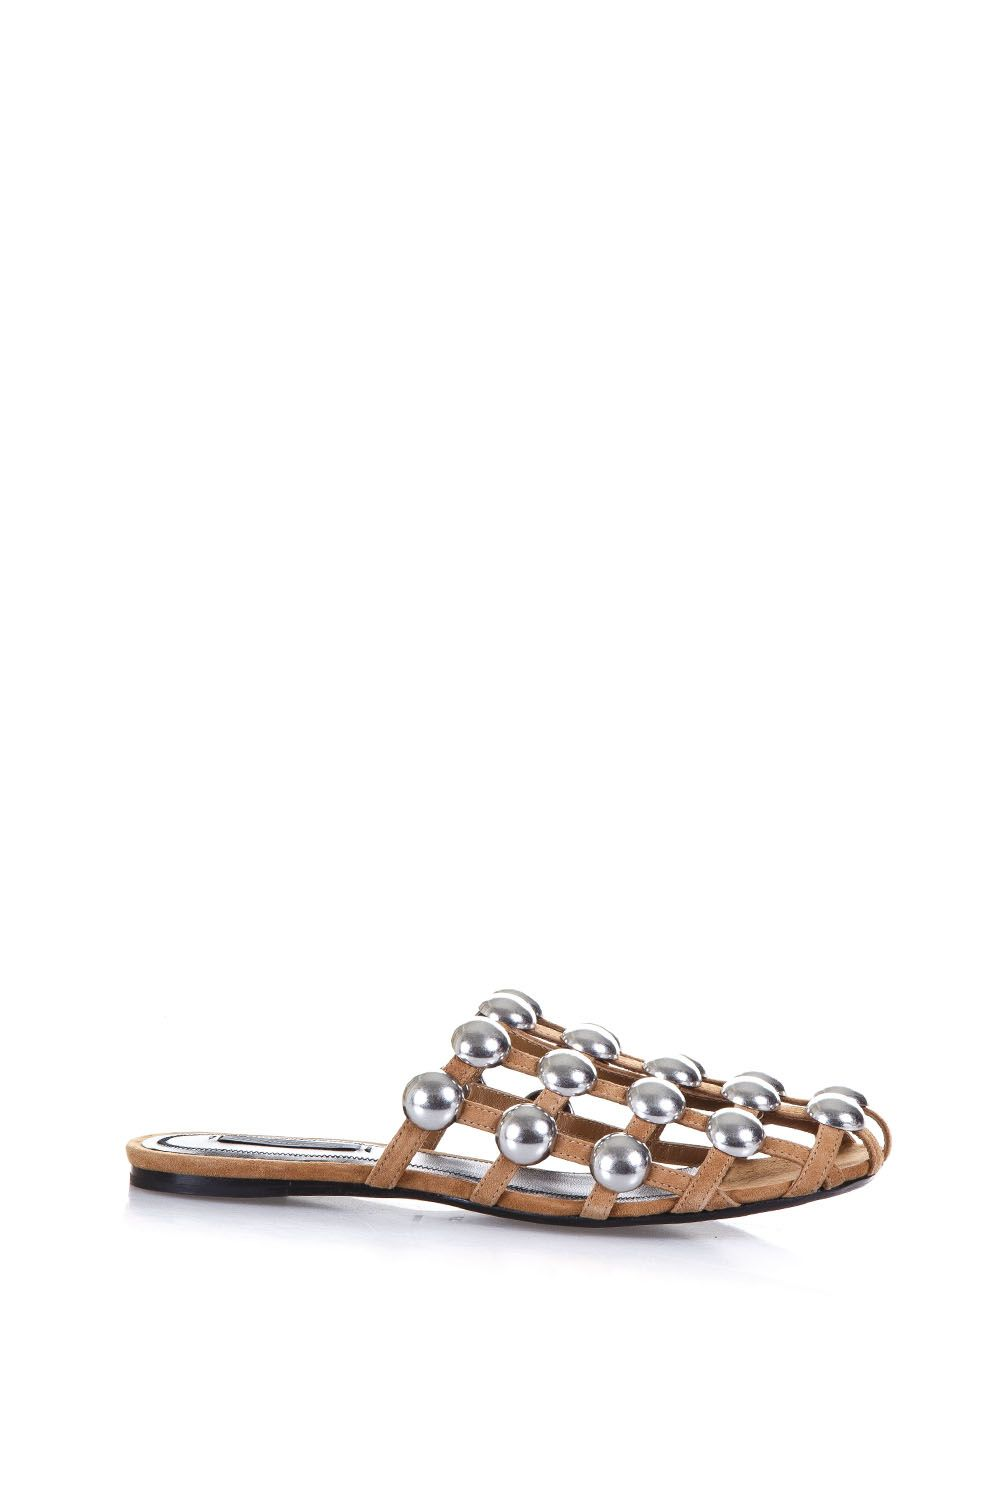 Alexander Wang Studded Suede & Leather Mules